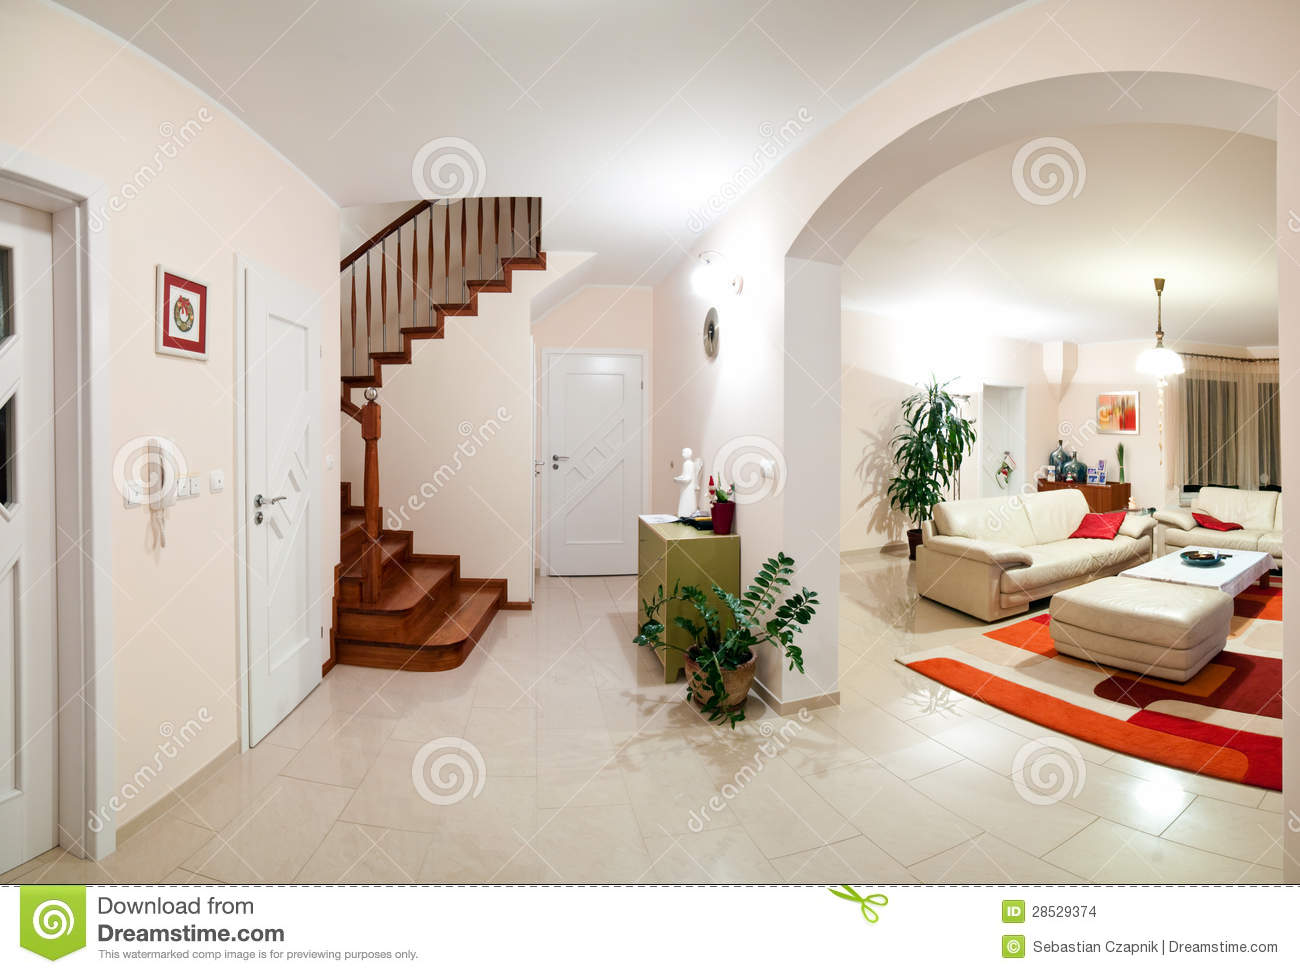 Interior of modern home stock photo. Image of house, carpet ...